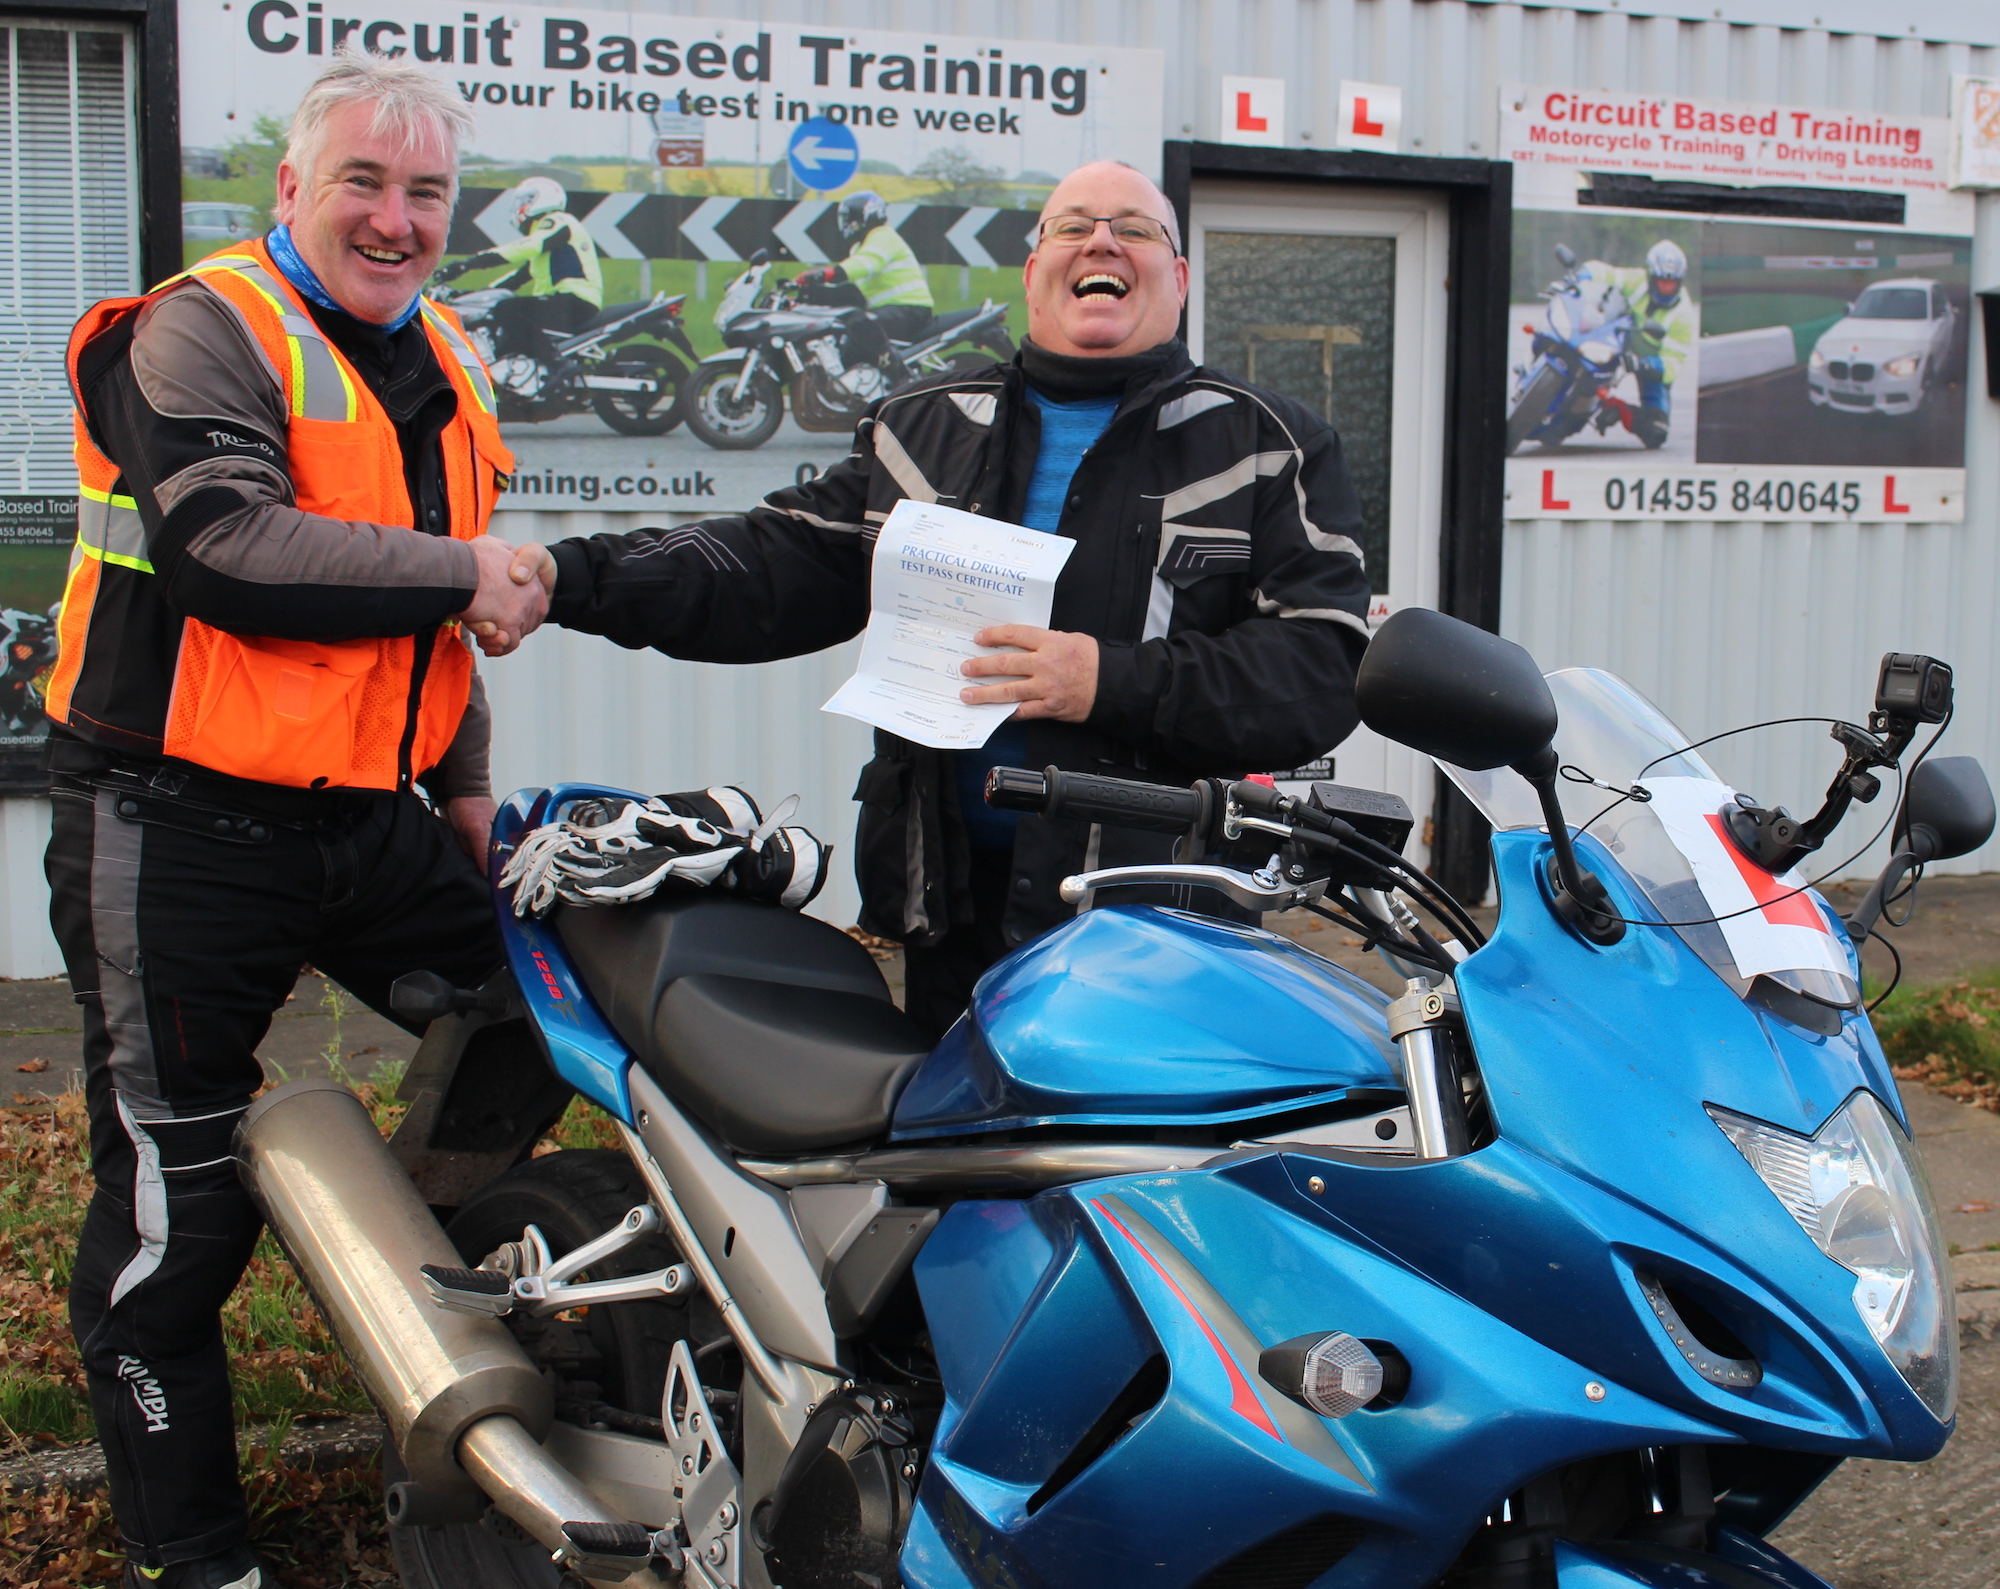 Motorcycle training in Leicester,  CBT, Direct Access, Advanced cornering in Leicester, Dover, Desford, Kings Lynn,  Sutton Coldfield, Tamworth, Lichfield, Nantwich, Ruddington, Nuneaton, Coventry, Hinckley, Derby, Nottingham, Birmingham, Stroud, Lincoln, St Neots, Camberley, Epsom, Kensington, Chelsea, Dagenham, Canvey Island, Chichester, Cirencester, Bristol, Bath, Cheltenham, Kettering, Kidderminster, Stevenage, St Albans, Cardiff, Leeds, Manchester, Warwick, Chester, Glasgow